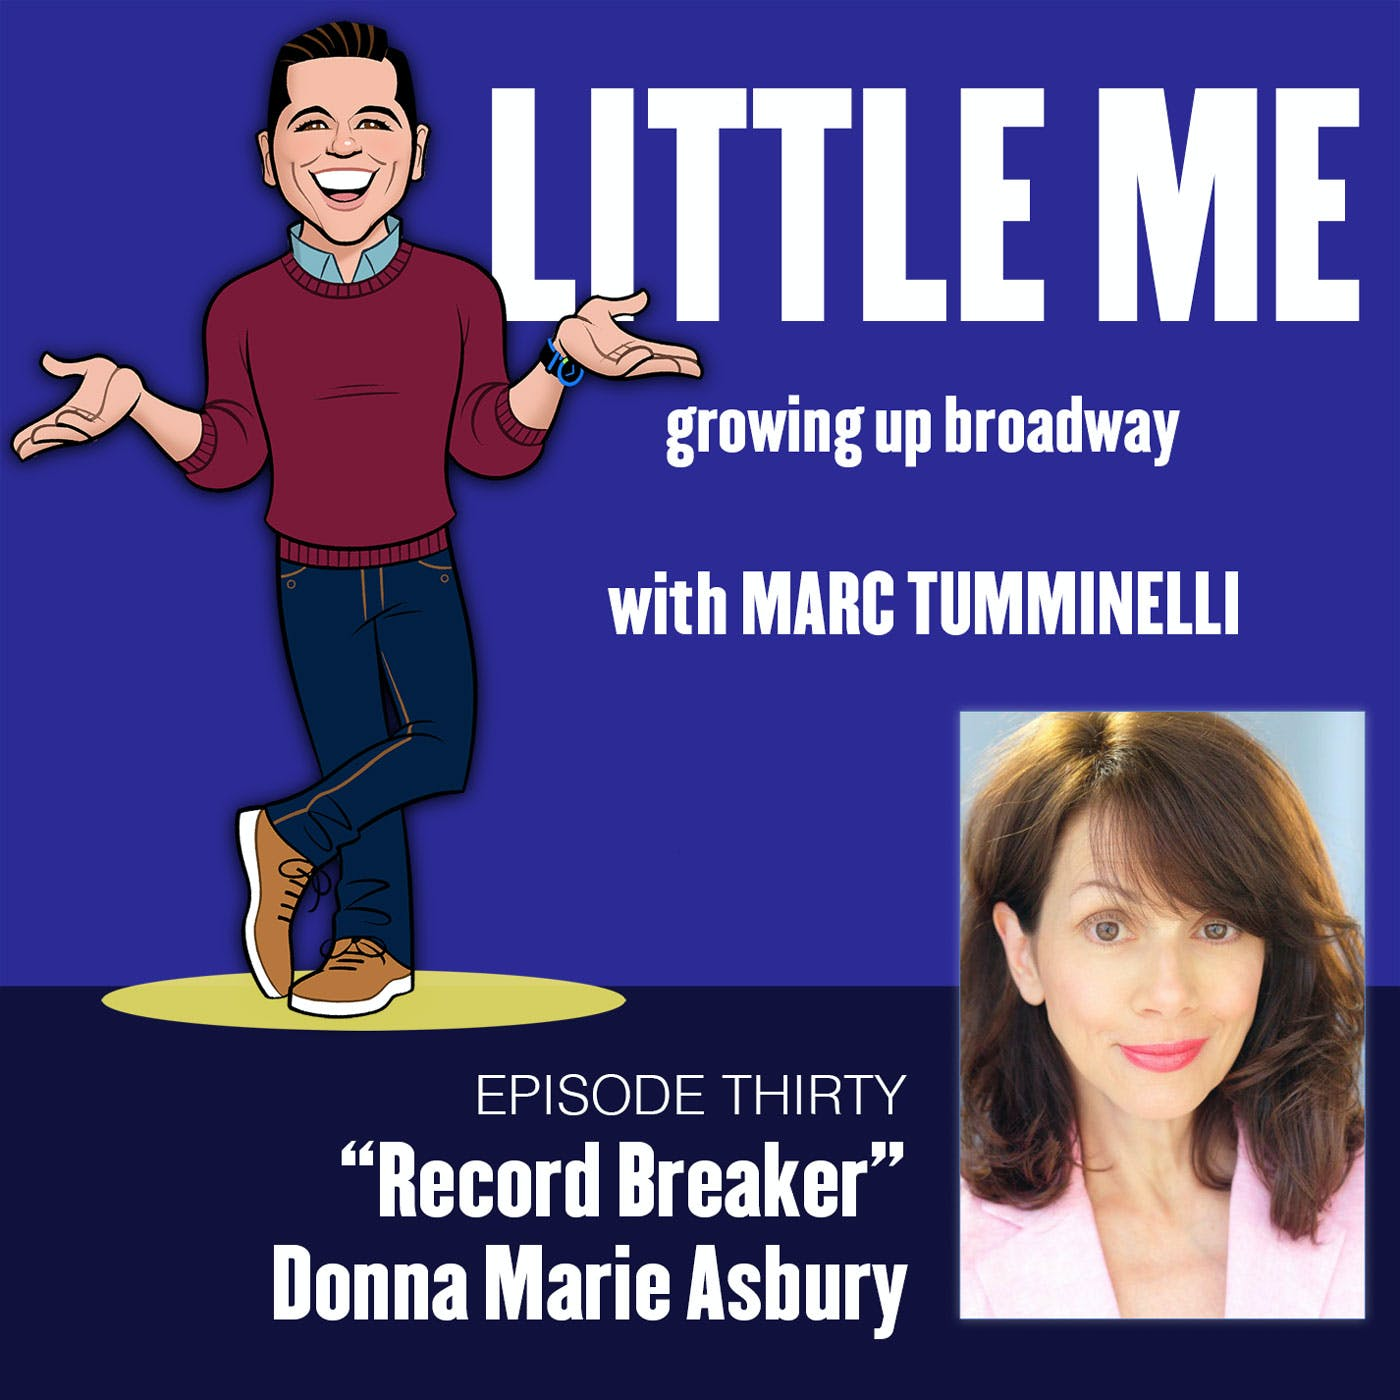 EP30 - Donna Marie Asbury - Record Breaker